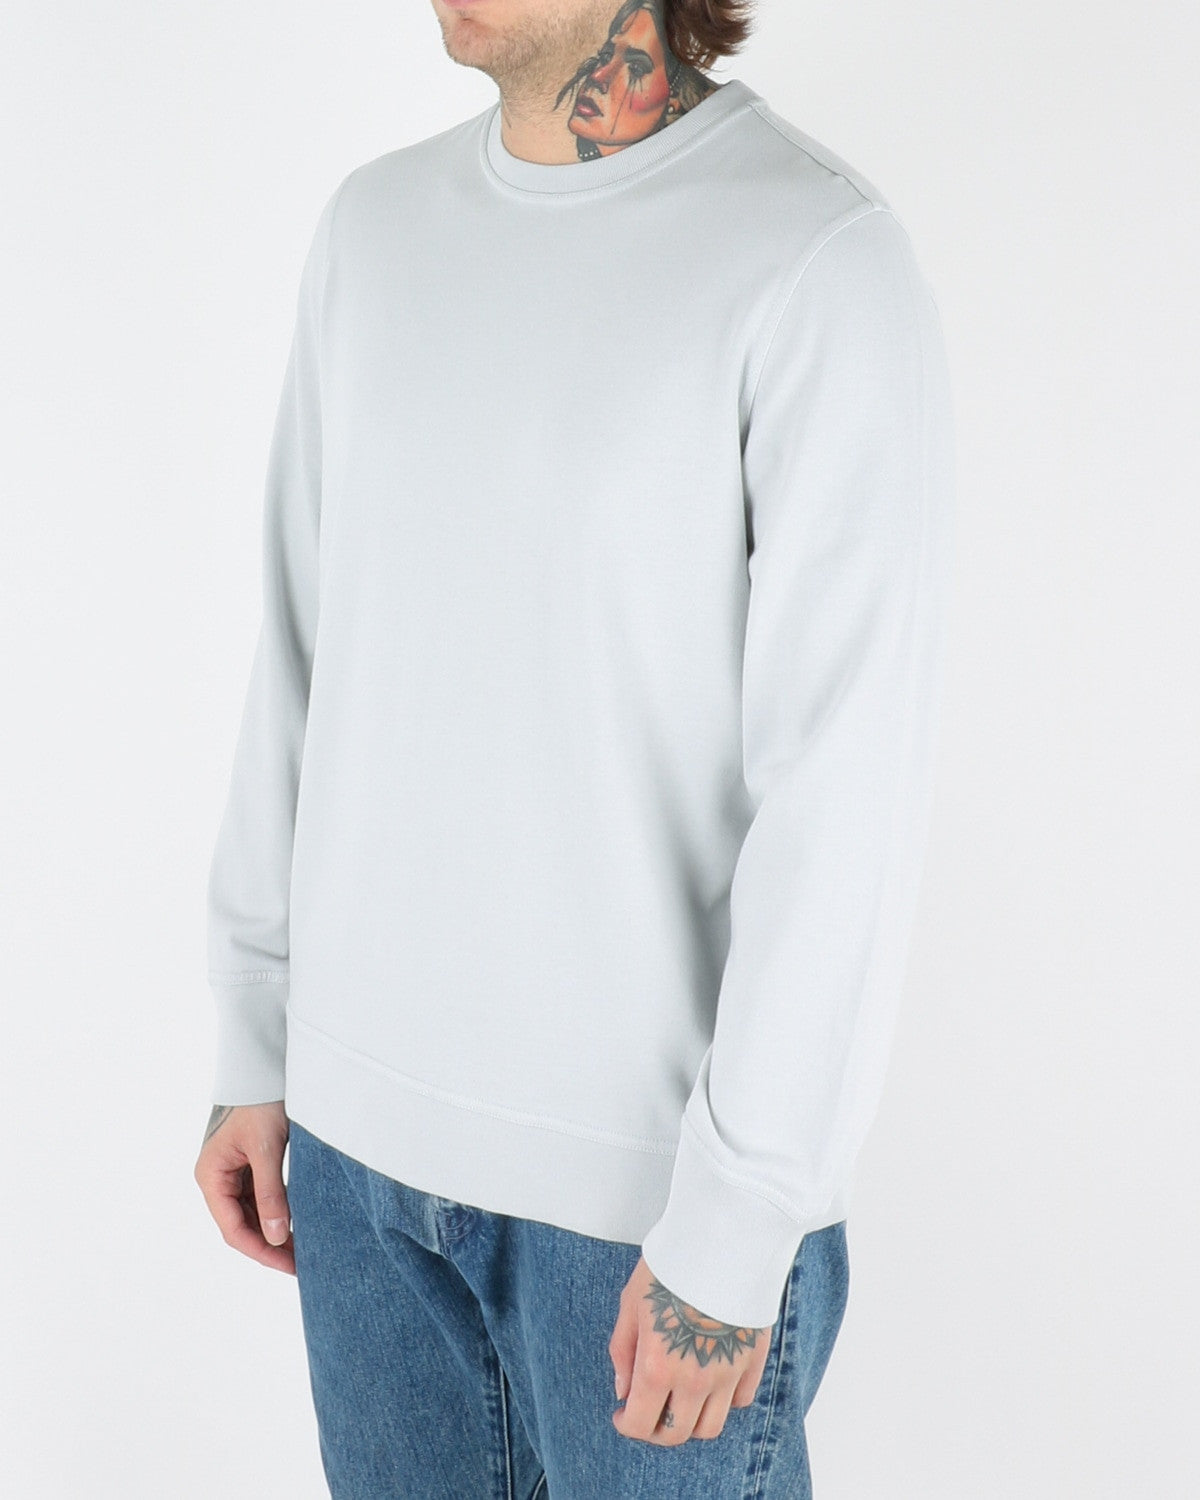 whyred_murry lightweight sweatshirt_vapor blue_view_2_2